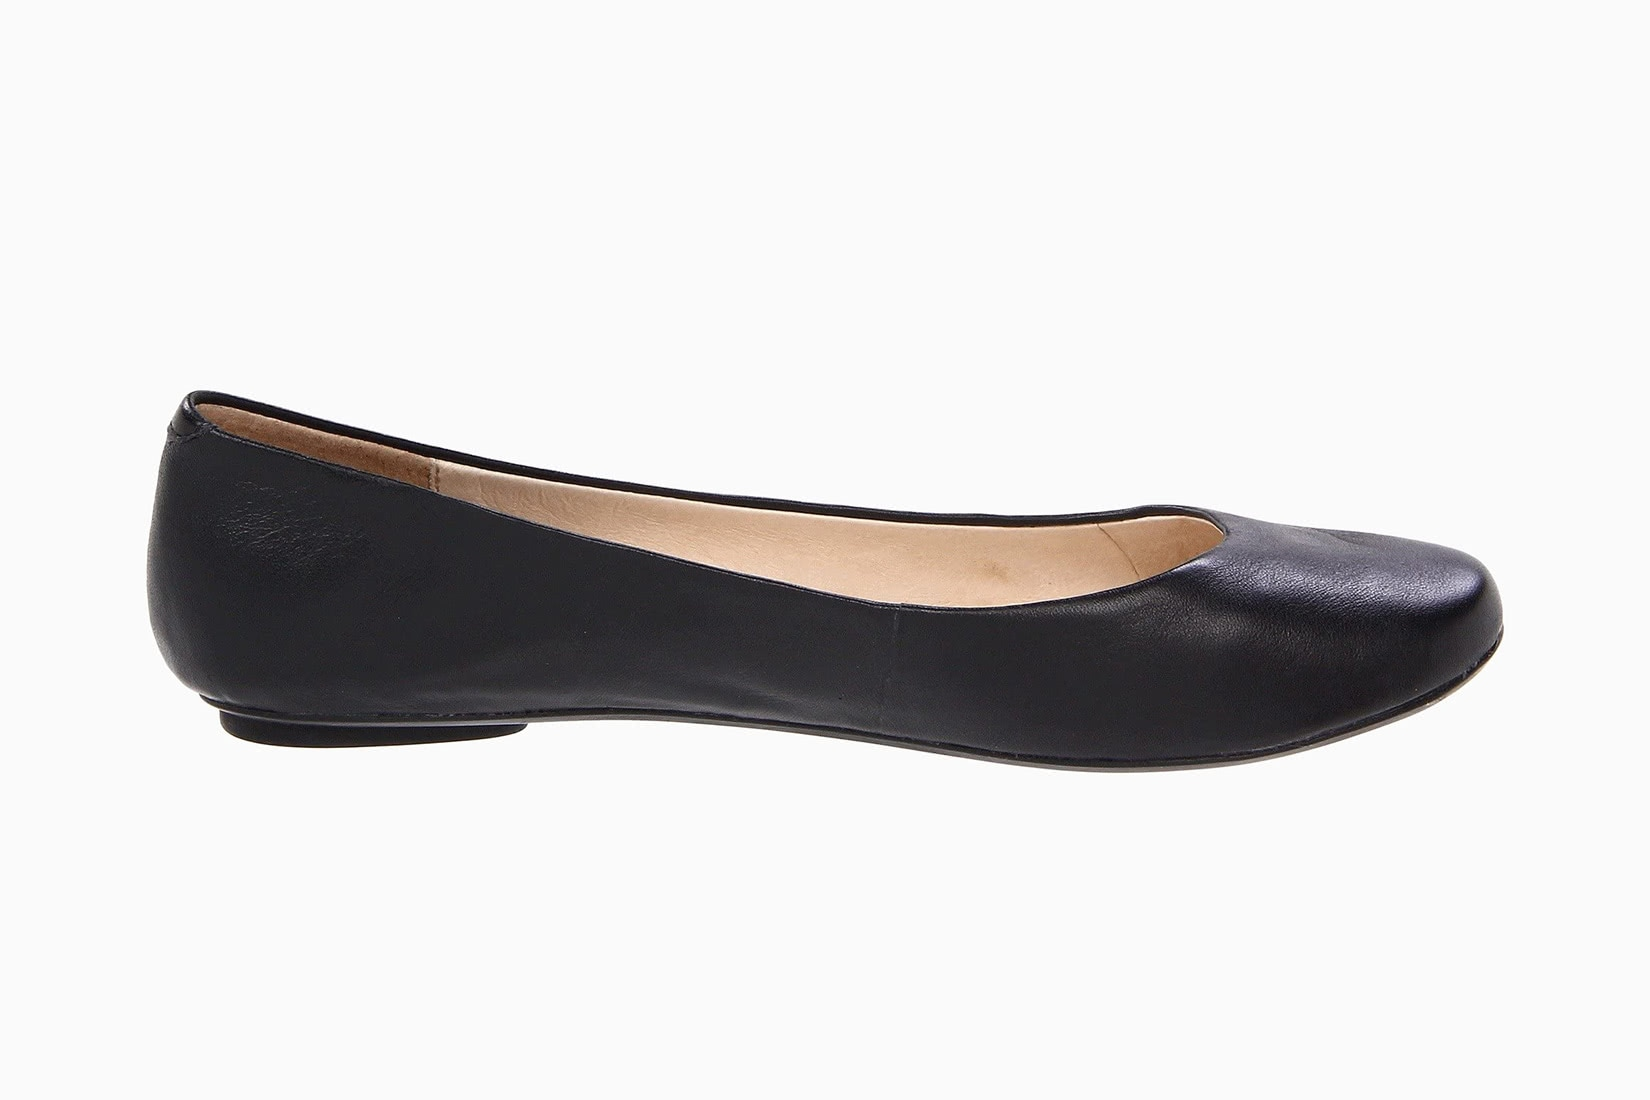 most comfortable flats women kenneth cole slip-on review - Luxe Digital